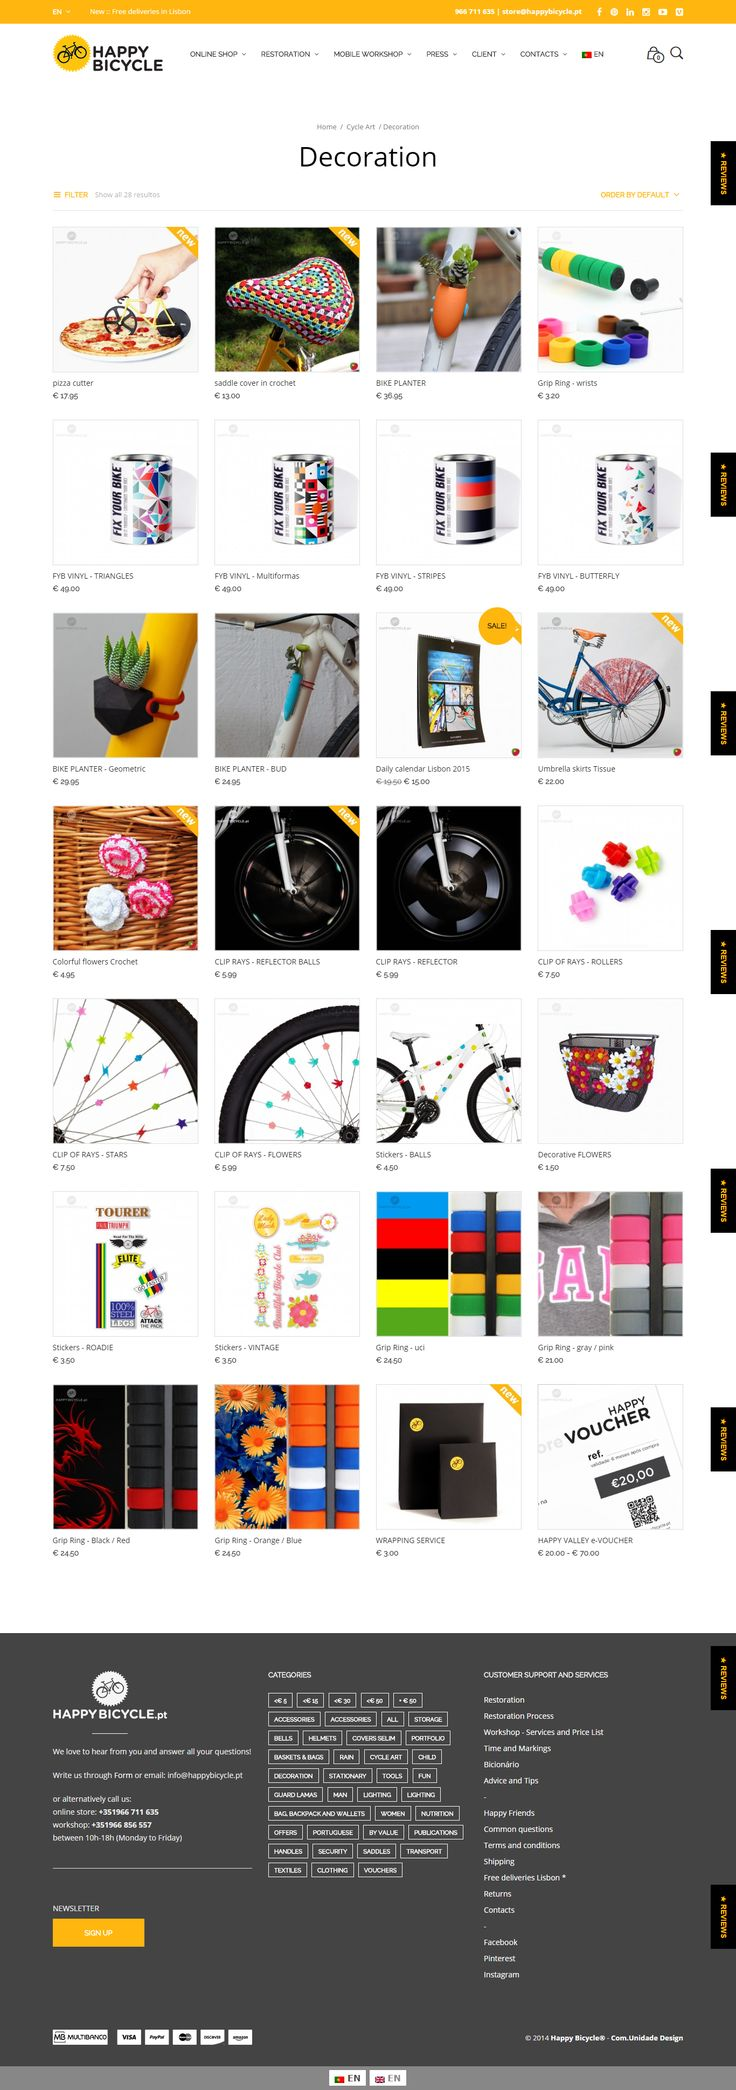 Mr Tailor proudly powers happybicycle.pt, a brand that provides bold and innovative accessories for bikers. #ecommerce http://themeforest.net/item/mr-tailor-responsive-woocommerce-theme/7292110?&utm_source=pinterest.com&utm_medium=social&utm_content=happy-bicycle&utm_campaign=showcase #bicycle #accessories #onlineshop #wordpress